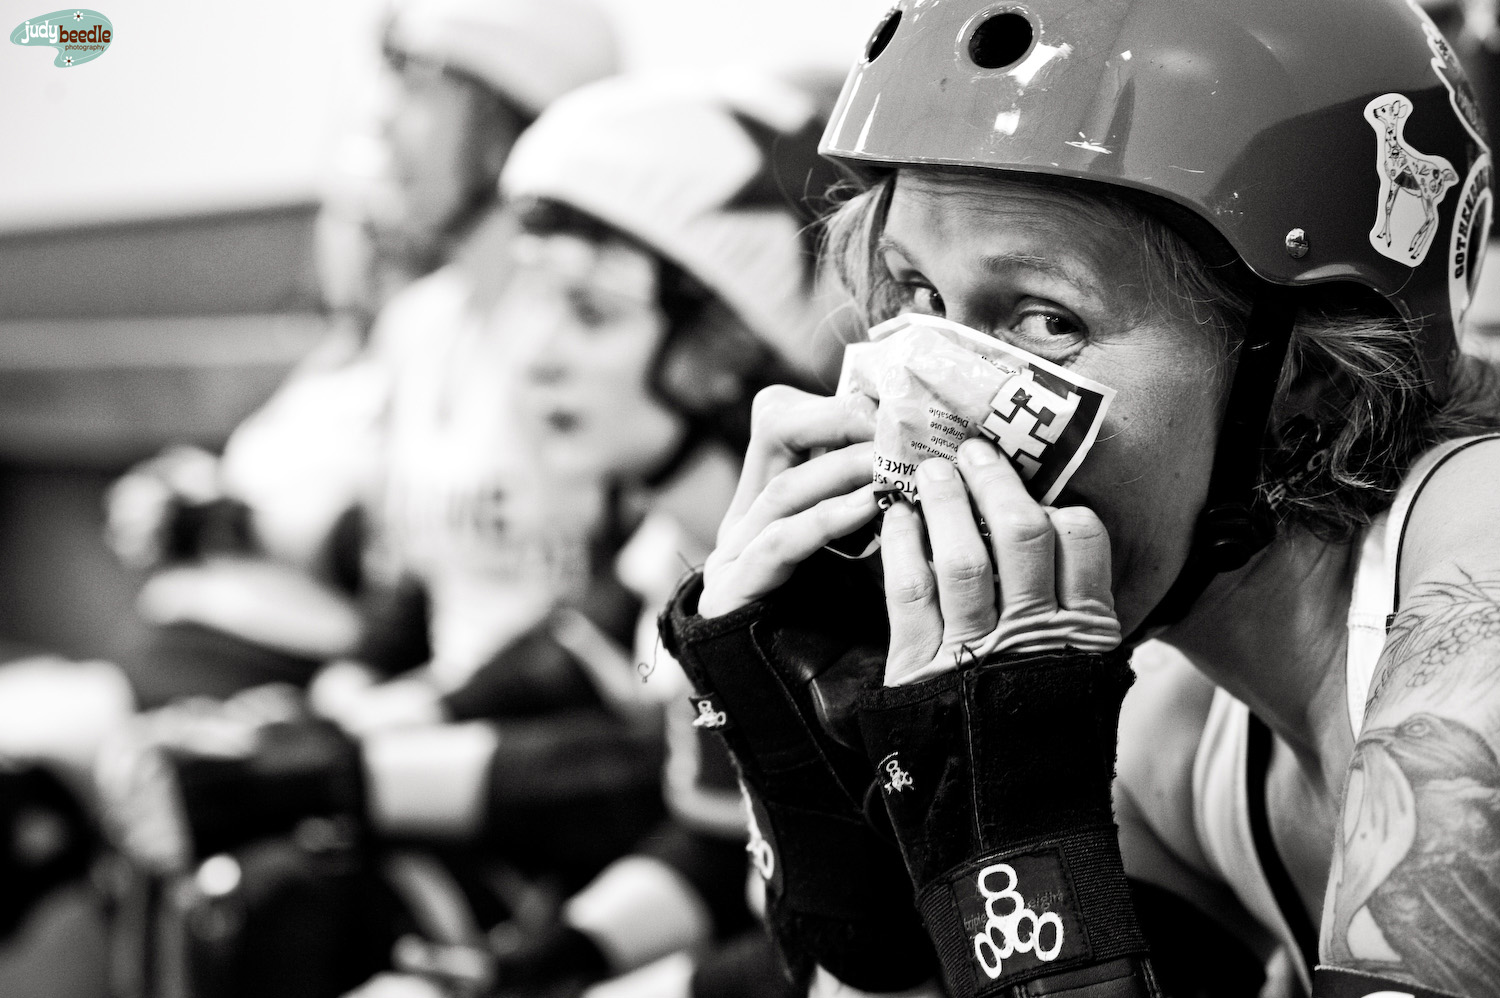 2/2 A hit to the face at roller derby | Happy Wheels | Portland, Maine.